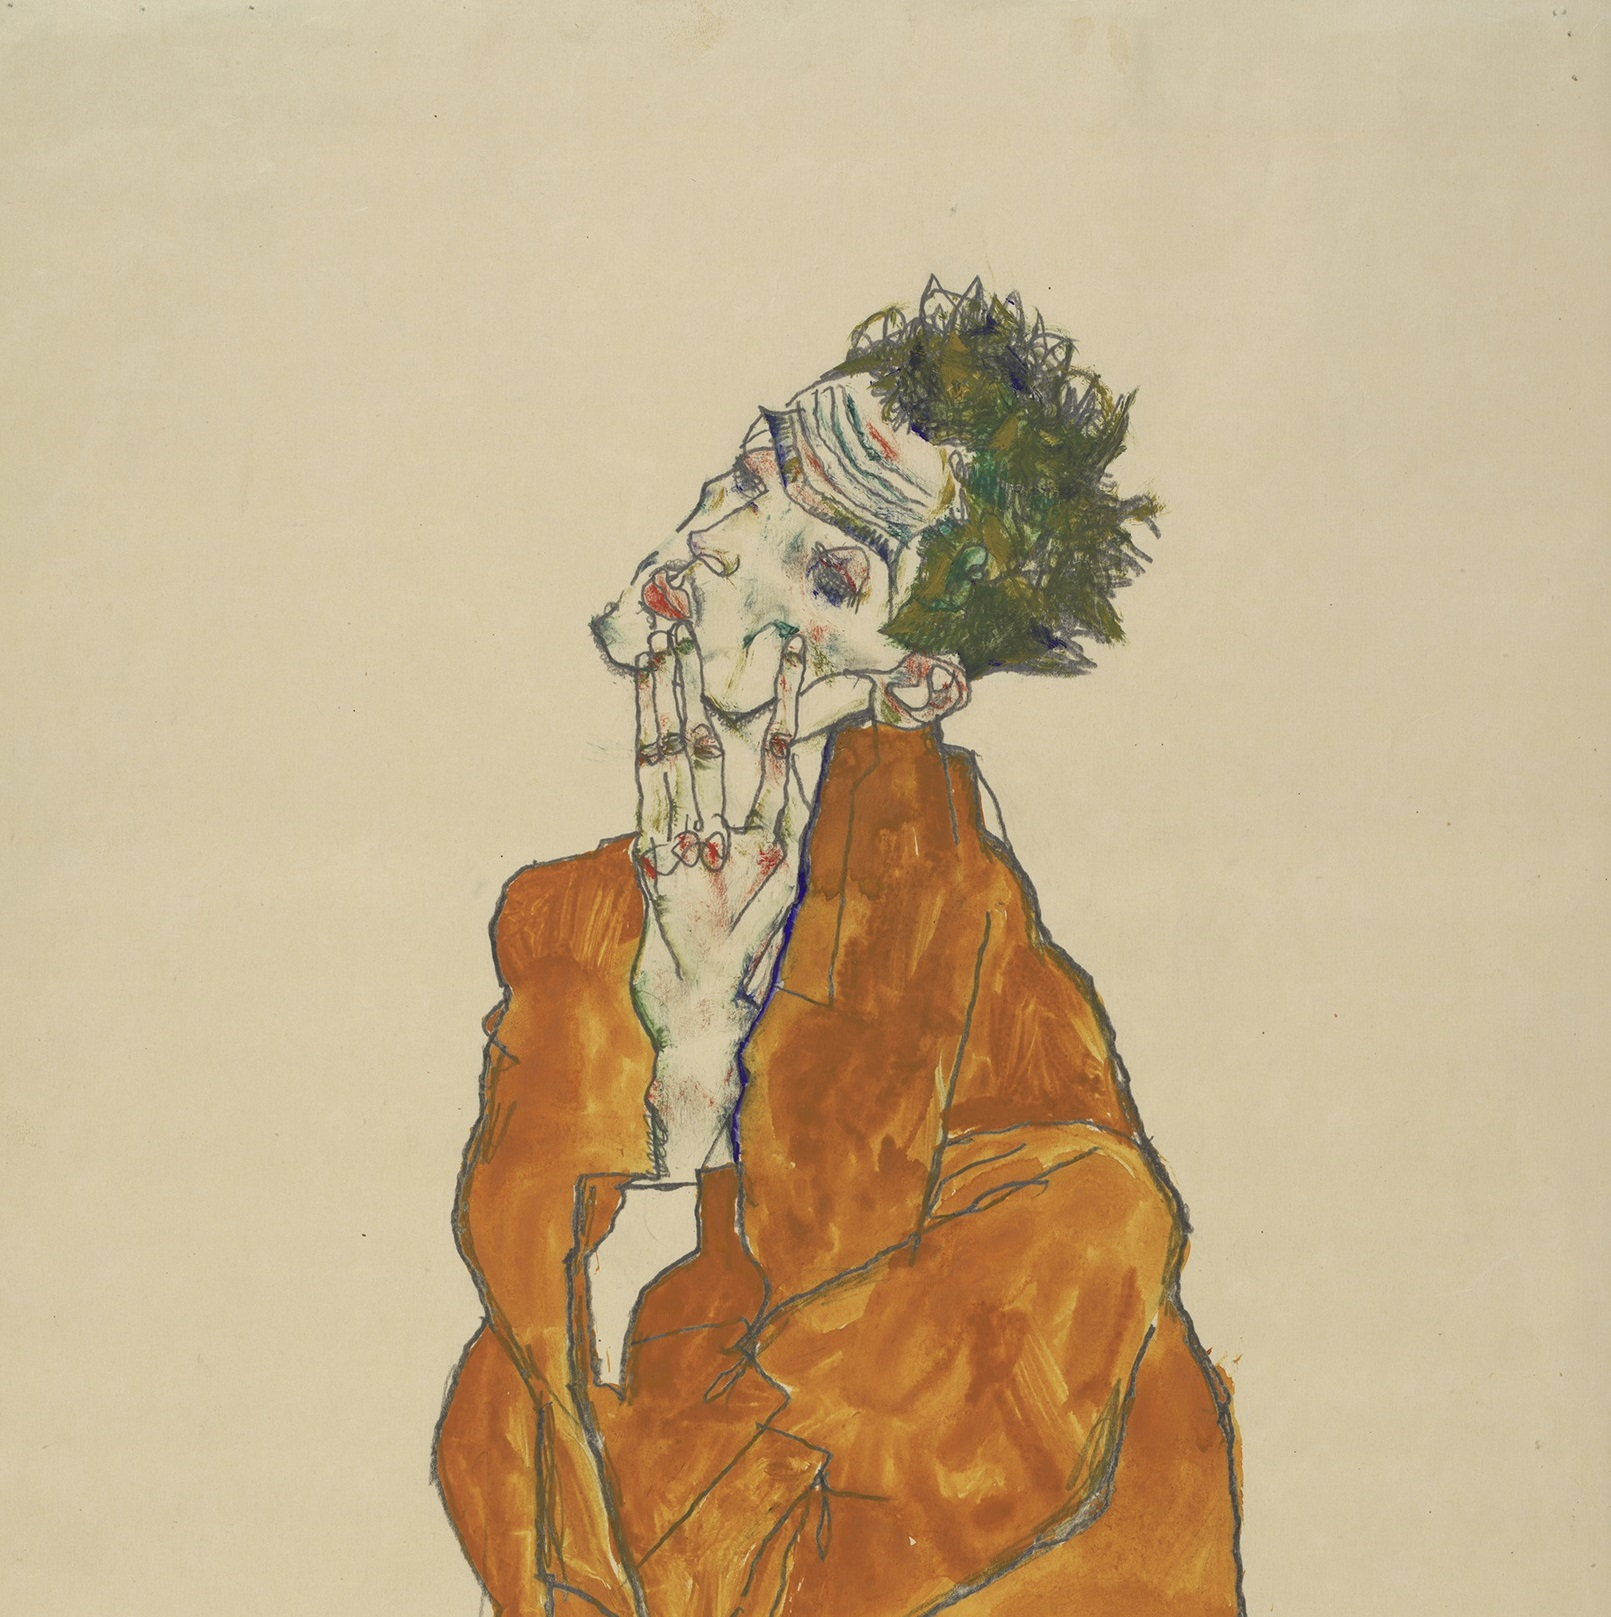 'Self Portrait (Man in Orange Jacket)' by Egon Schiele. Image courtesy of the Albertina Museum